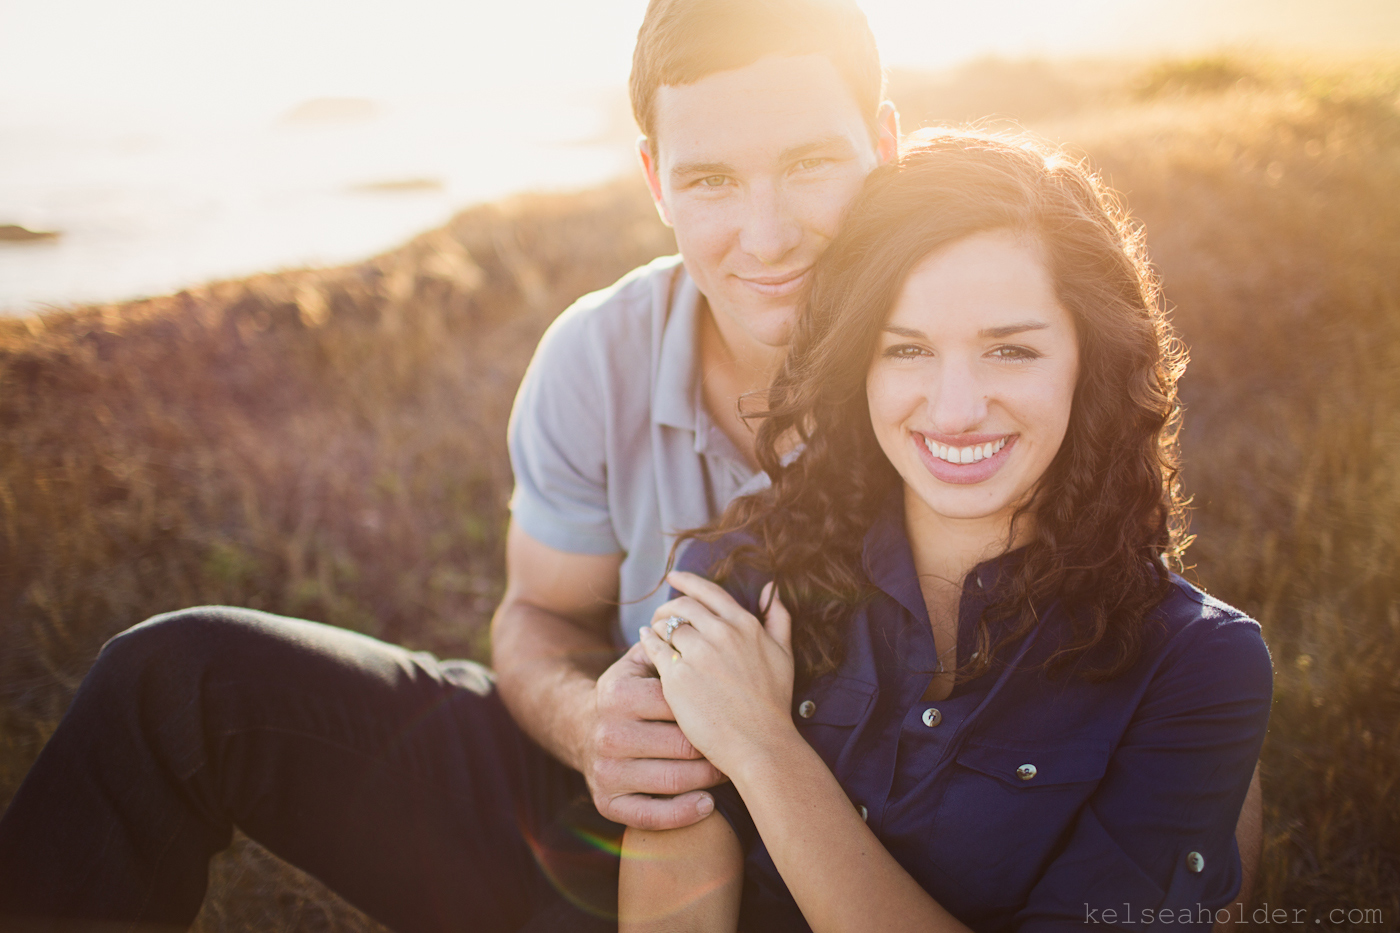 san_luis_obispo_beach_engagement_by_kelsea_holder019